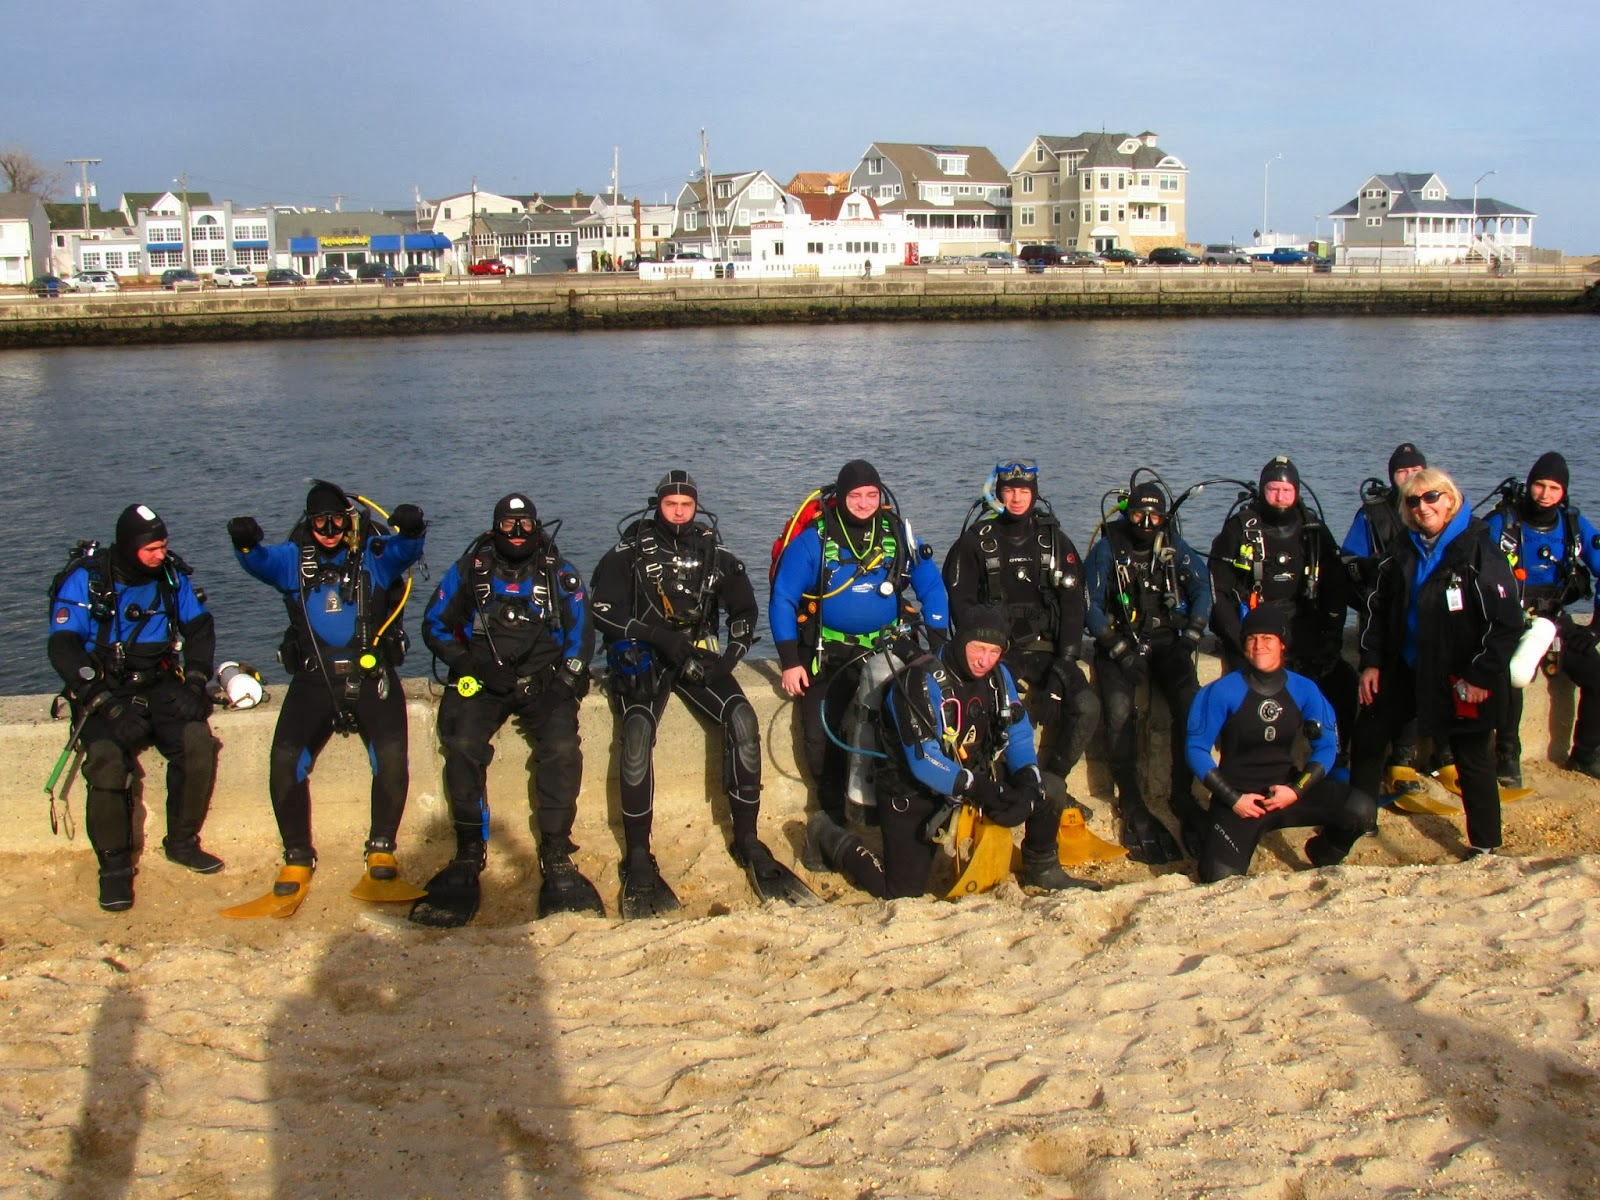 Point pleasant beach rescue dive team new years dive 2014 the last diver came out of the water one hour and twenty minutes later and the tide was just stopped then well the swimming everybody had to do helped keep nvjuhfo Image collections